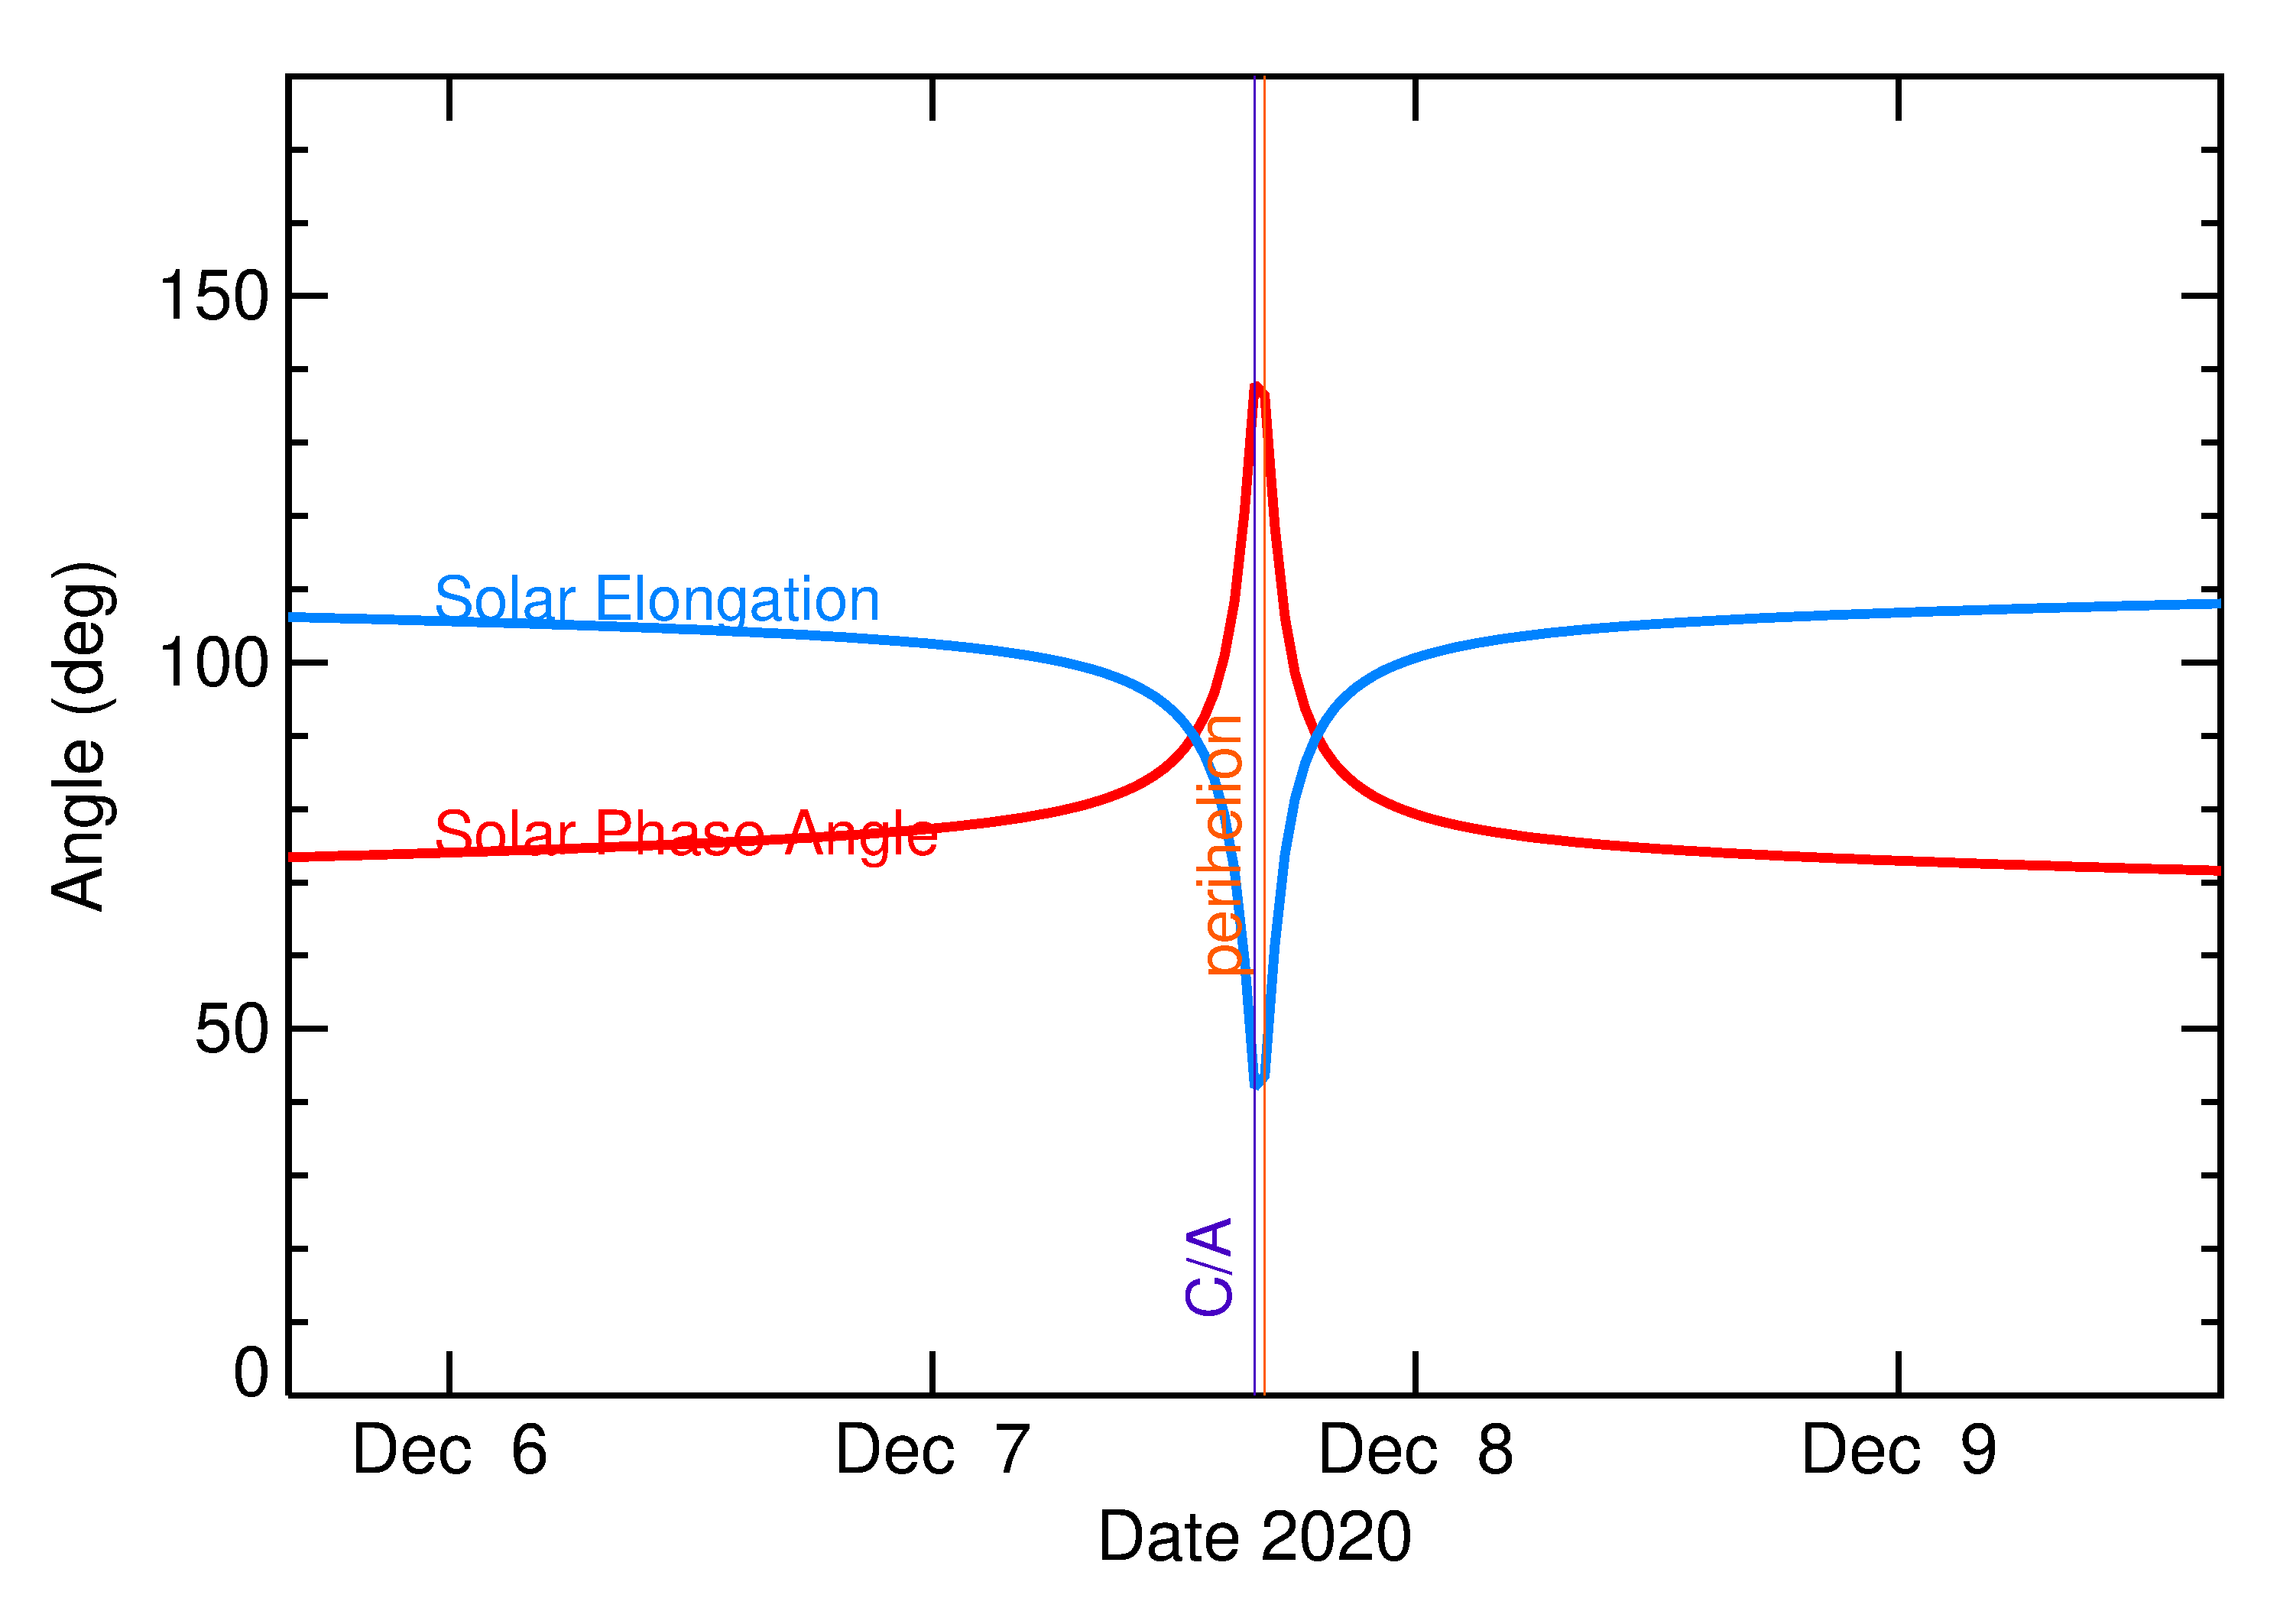 Solar Elongation and Solar Phase Angle of 2020 XK1 in the days around closest approach